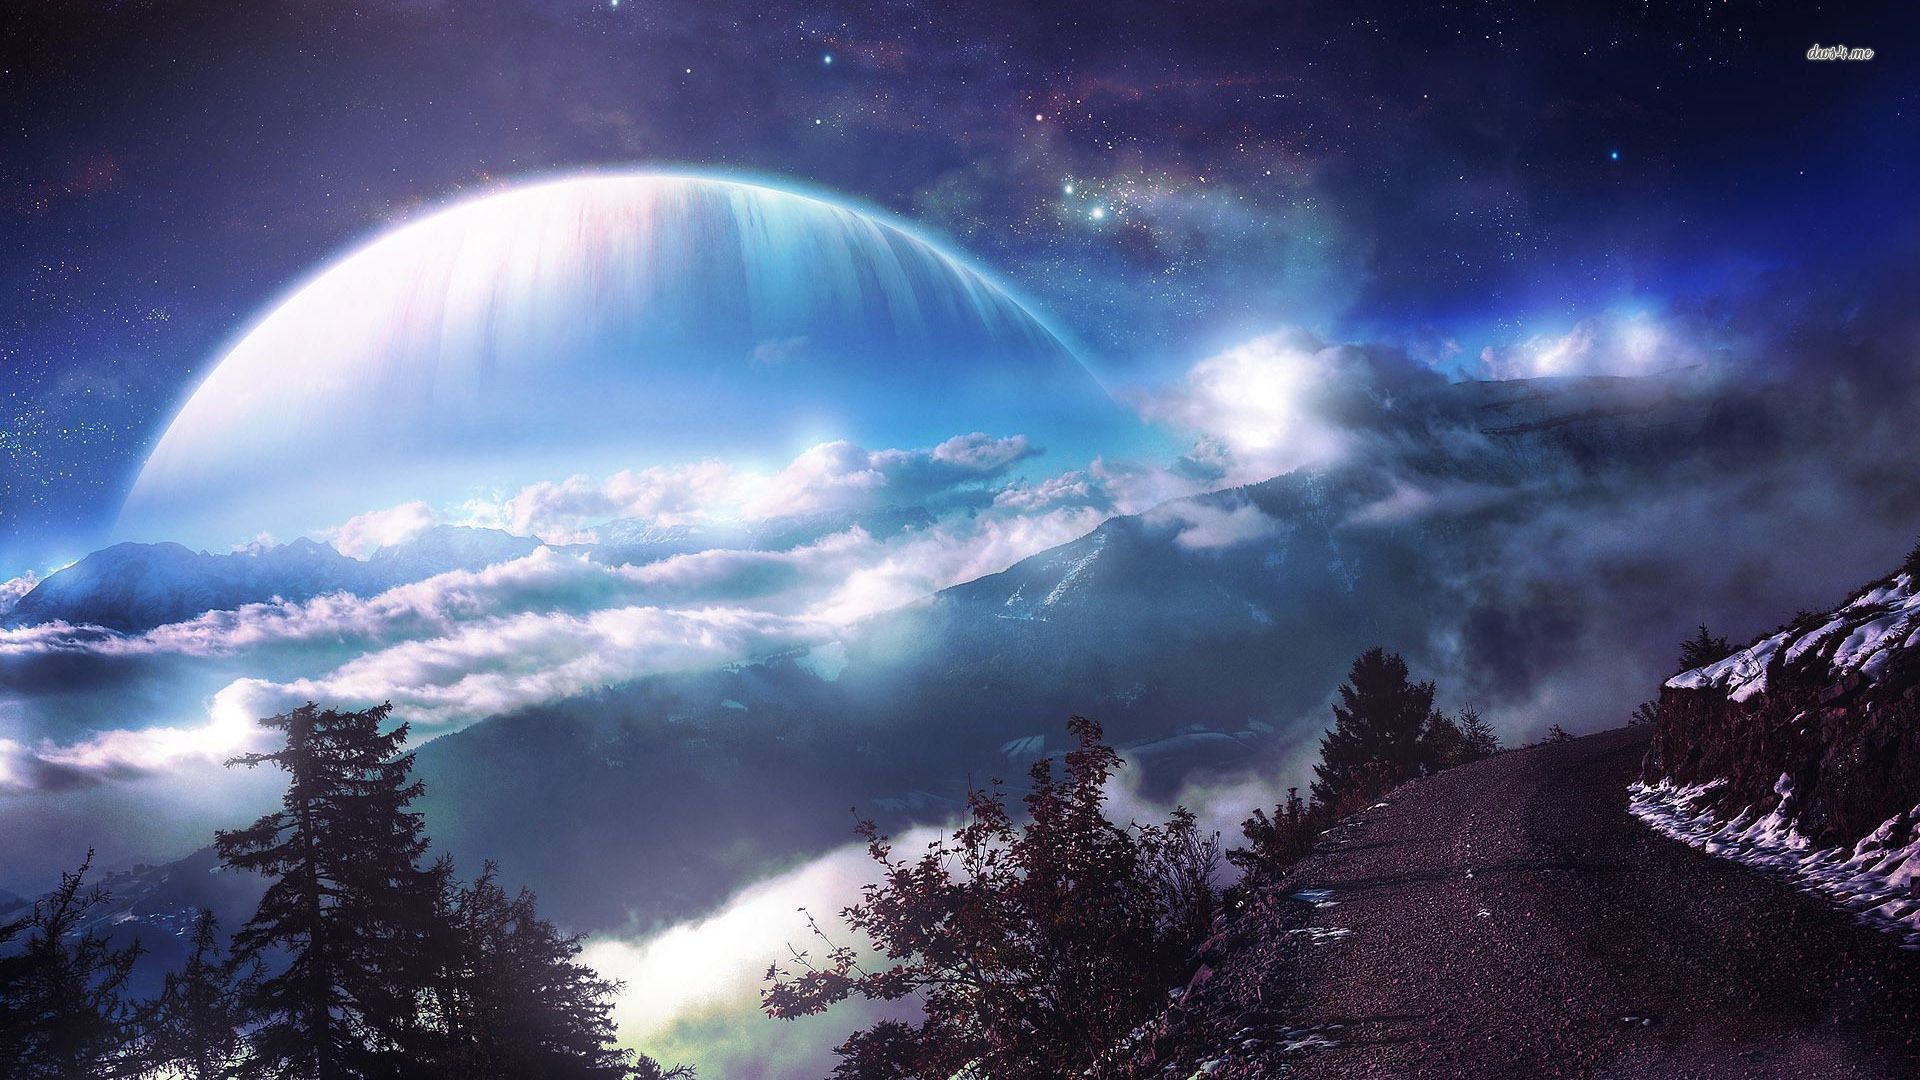 Res: 1920x1080, Planet nebula fantasy Wallpaper | Lumia Wallpapers Free HD | Fantasy Space  | Pinterest | Space painting and Wallpaper